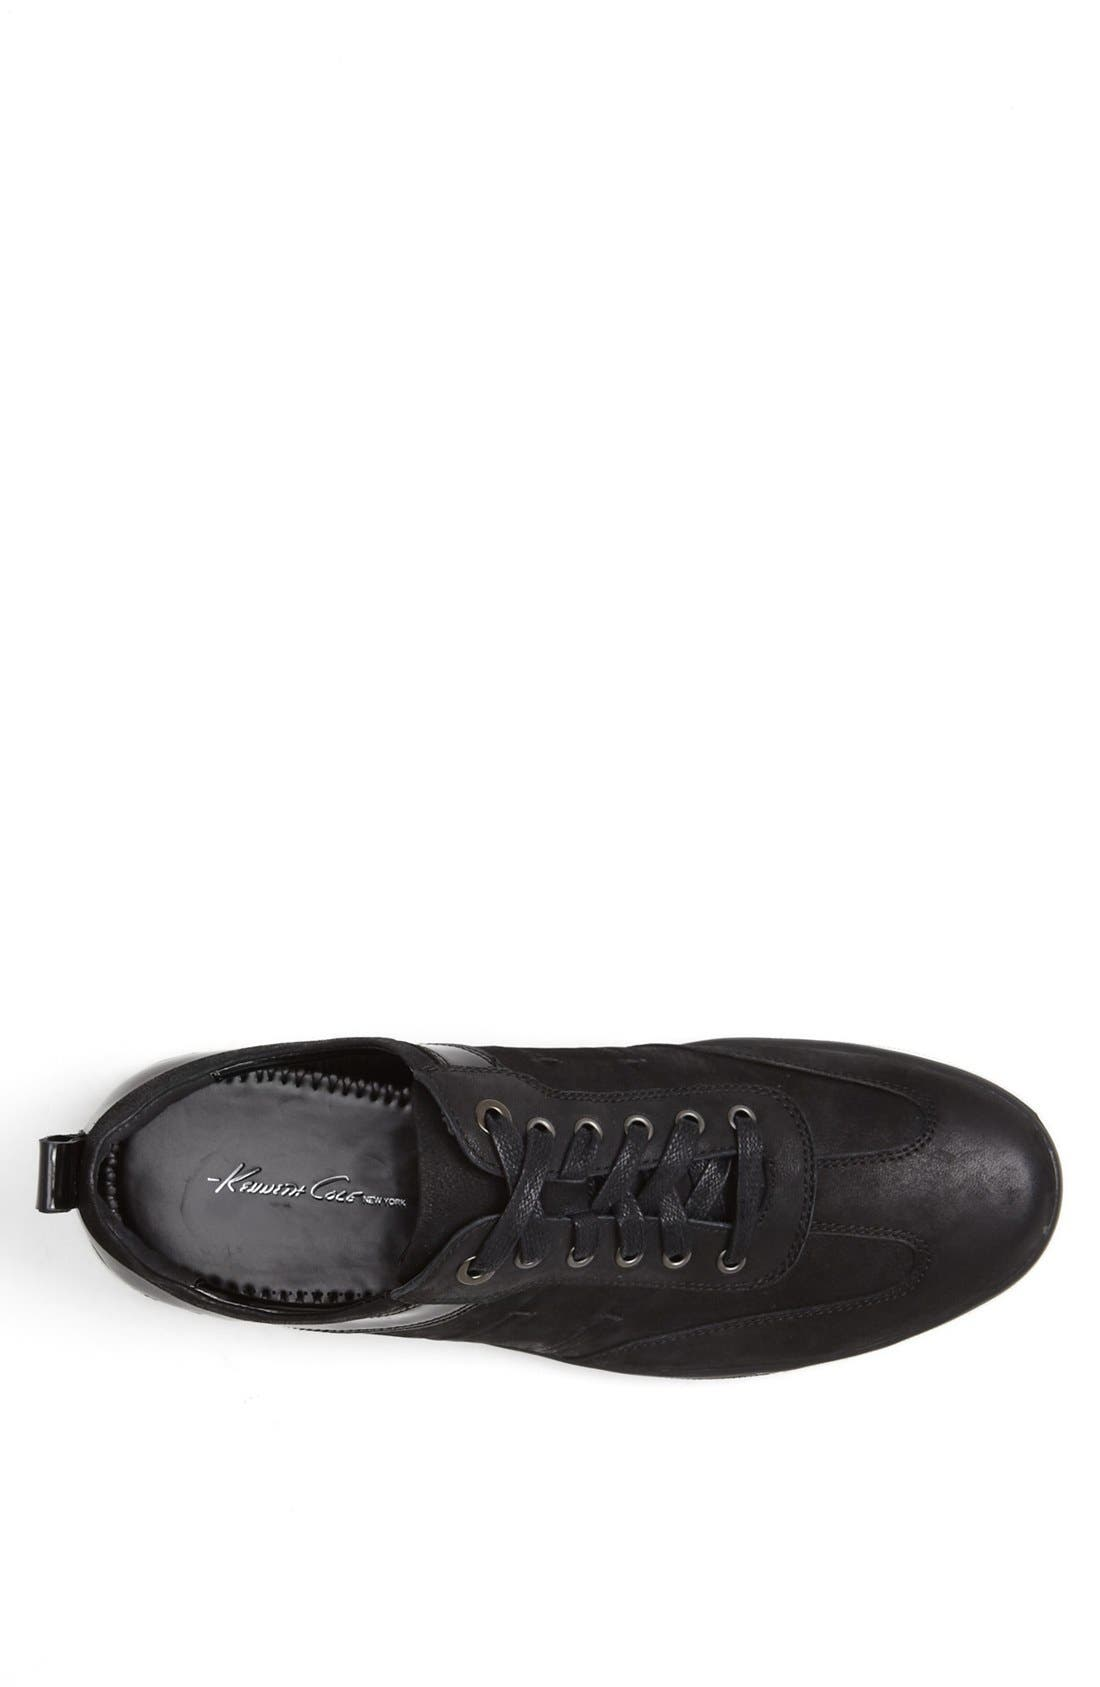 Alternate Image 3  - Kenneth Cole New York 'Down the Hatch' Sneaker